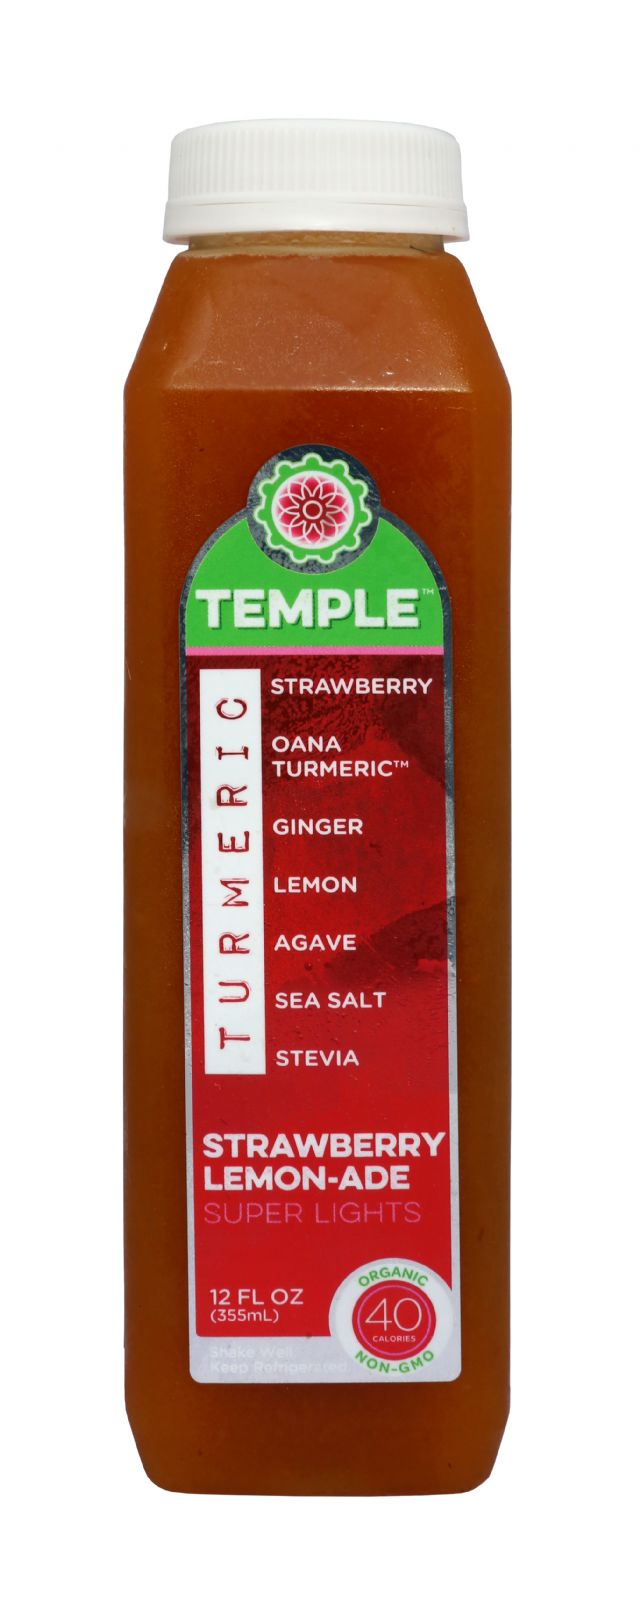 Temple Turmeric Super Lights: Temple StrawLem Front